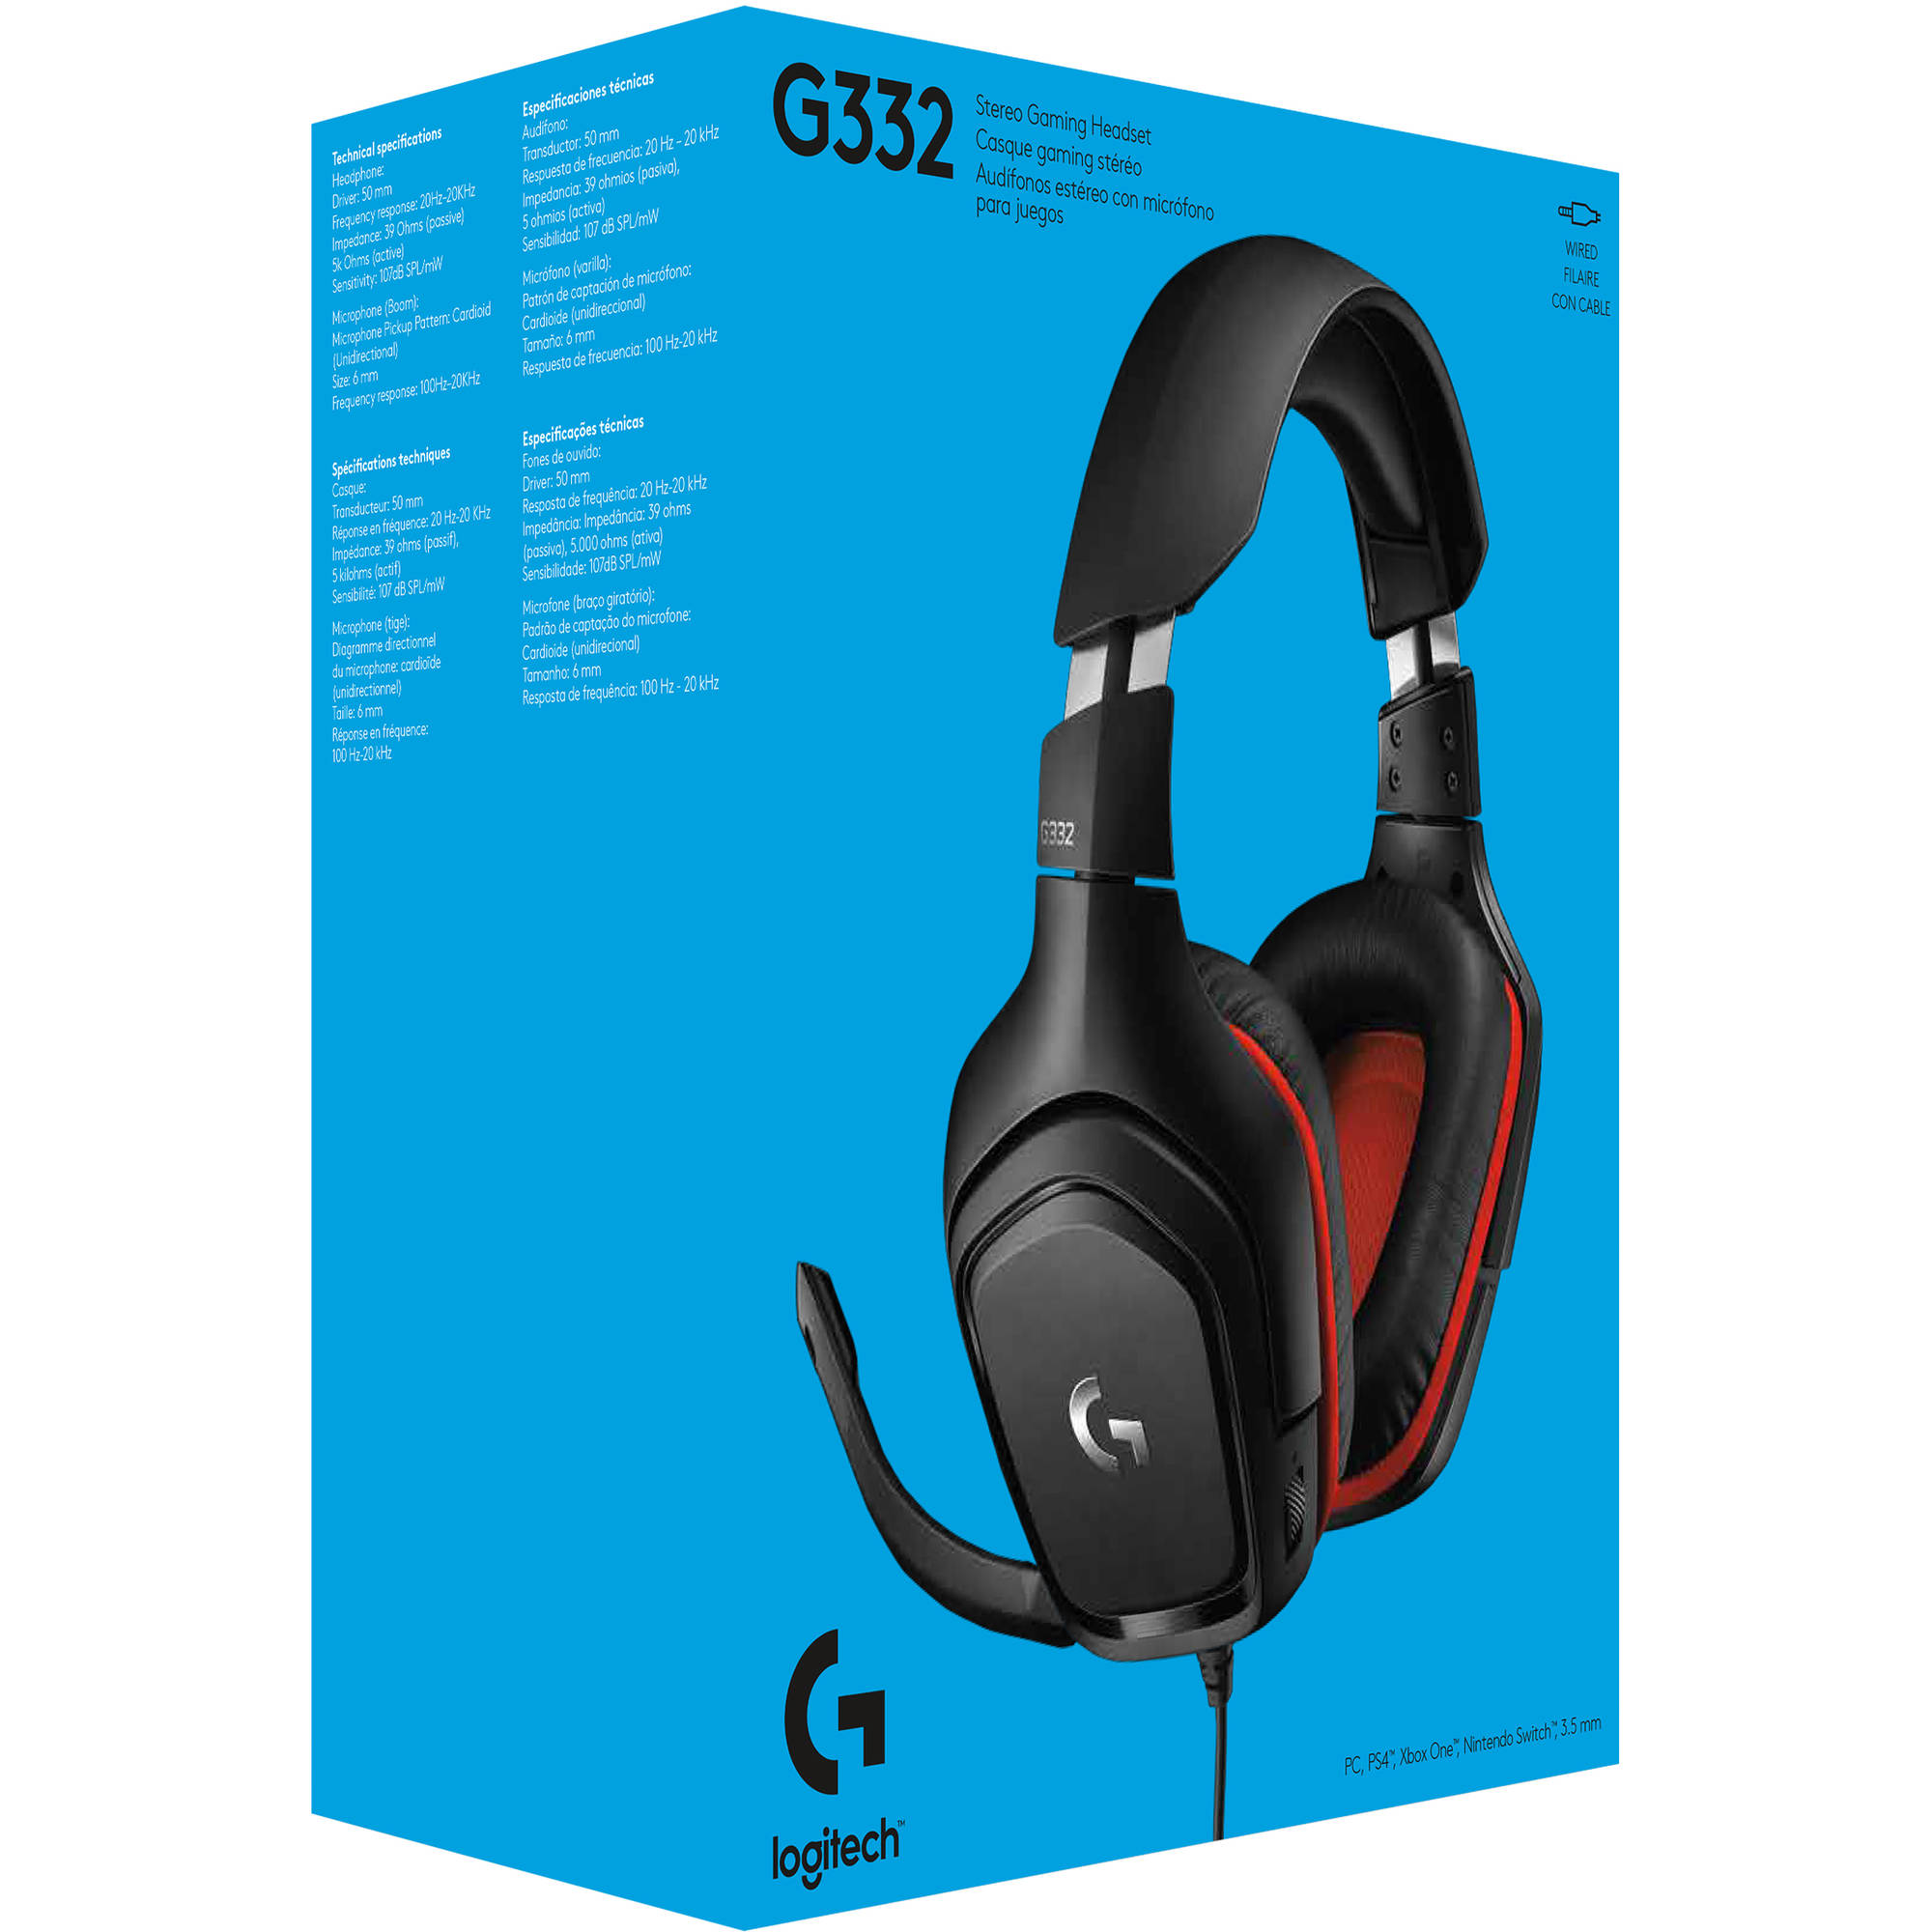 Logitech G332 Wired Stereo Gaming Headset